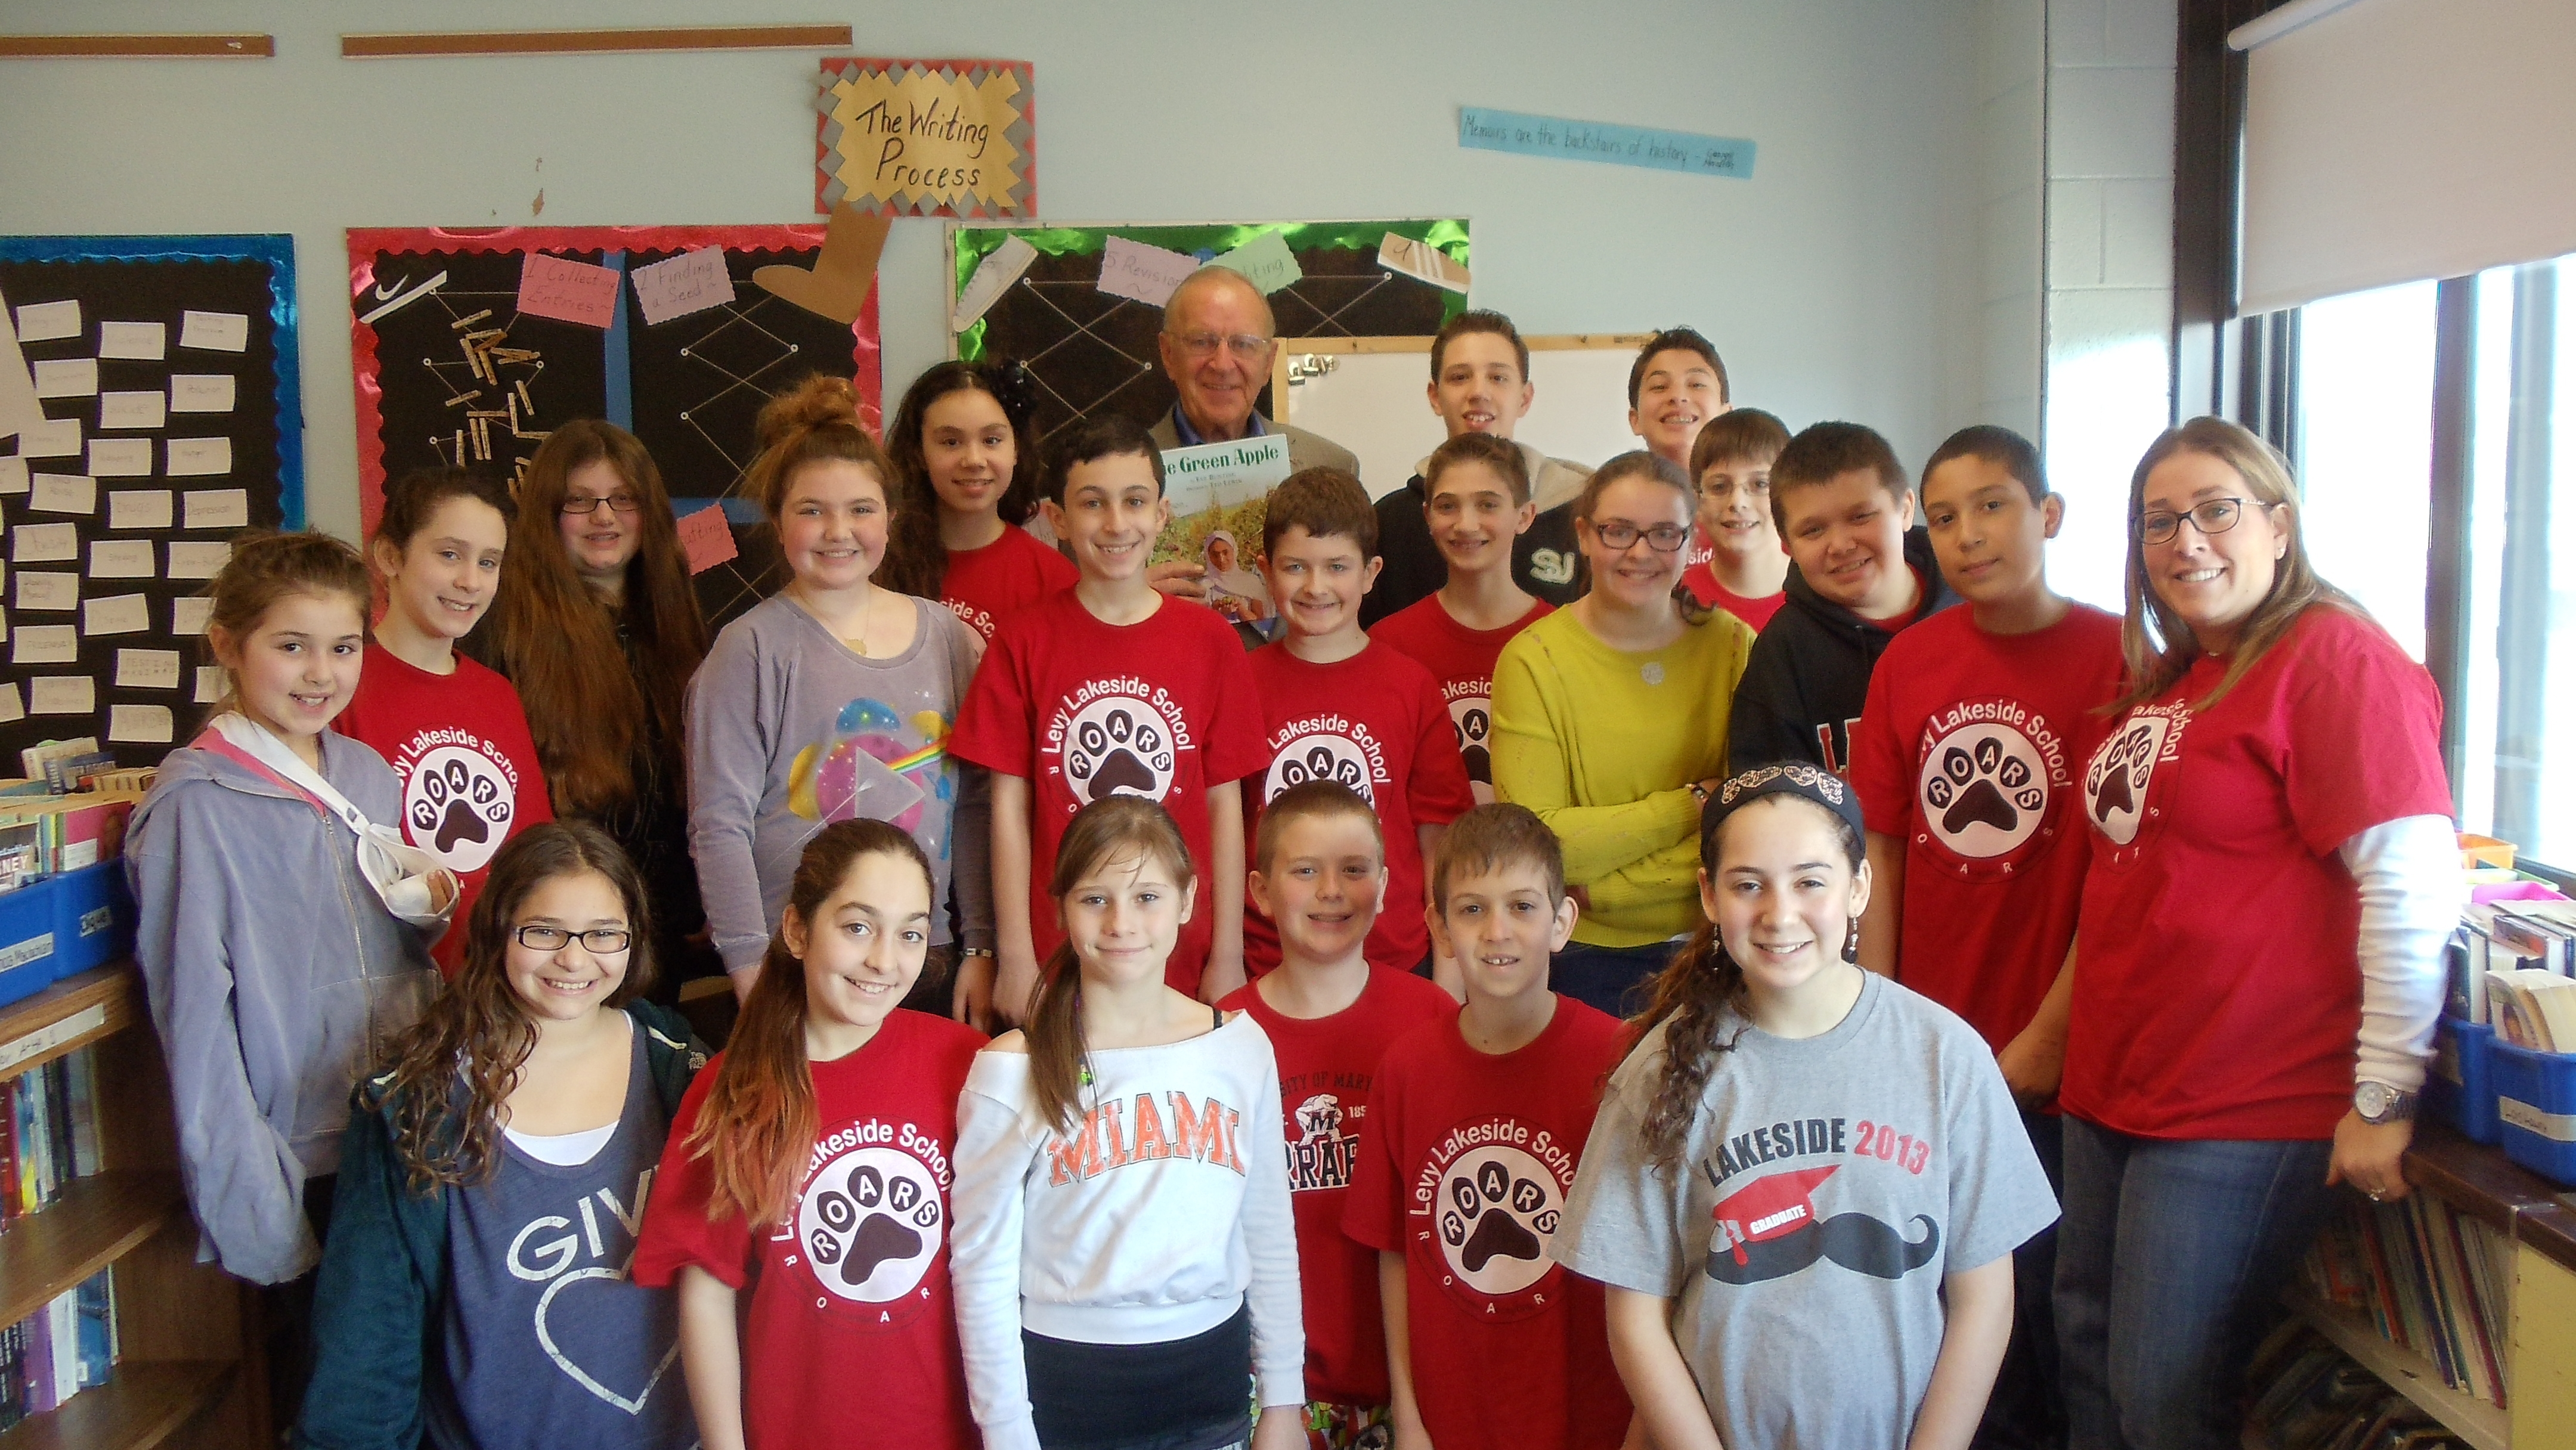 Assemblyman Dave McDonough (R,C,I-Merrick) joined the sixth grade class at Levy-Lakeside School, where he read �One Green Apple� as part of the Community Read Aloud Celebration. The program promotes cultural diversity and understanding in schools.